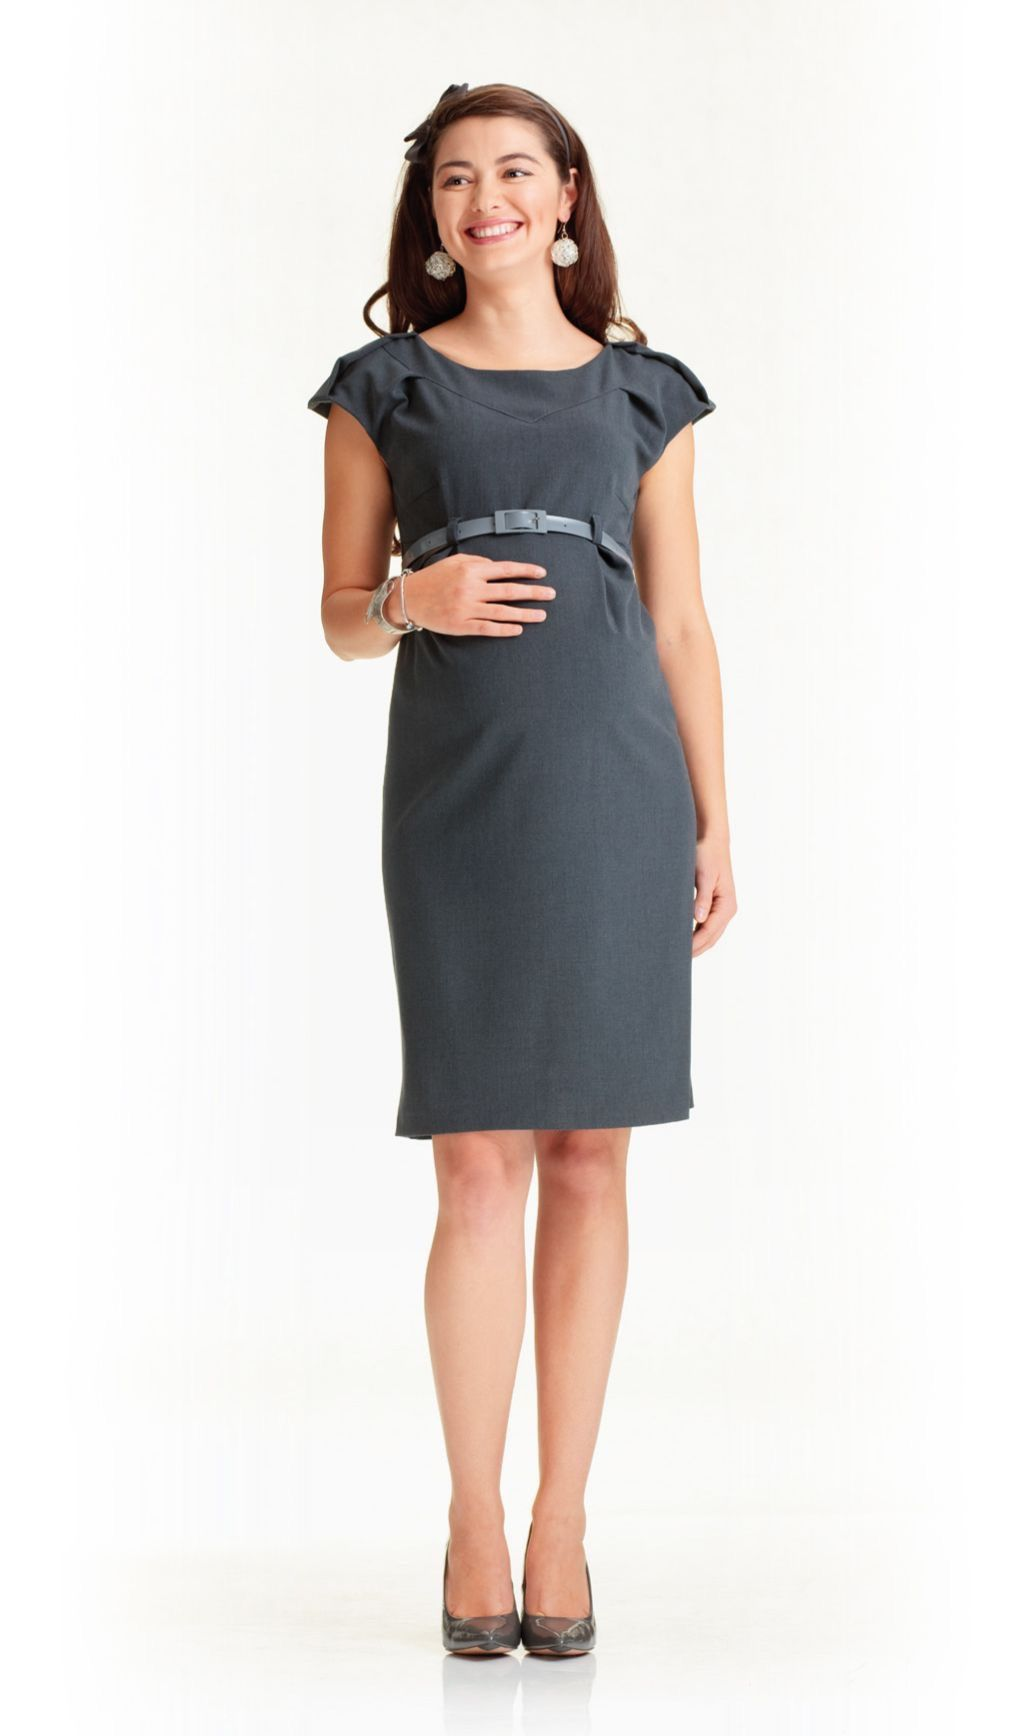 Office maternity dress outfit ideas pinterest maternity office maternity dress ombrellifo Image collections